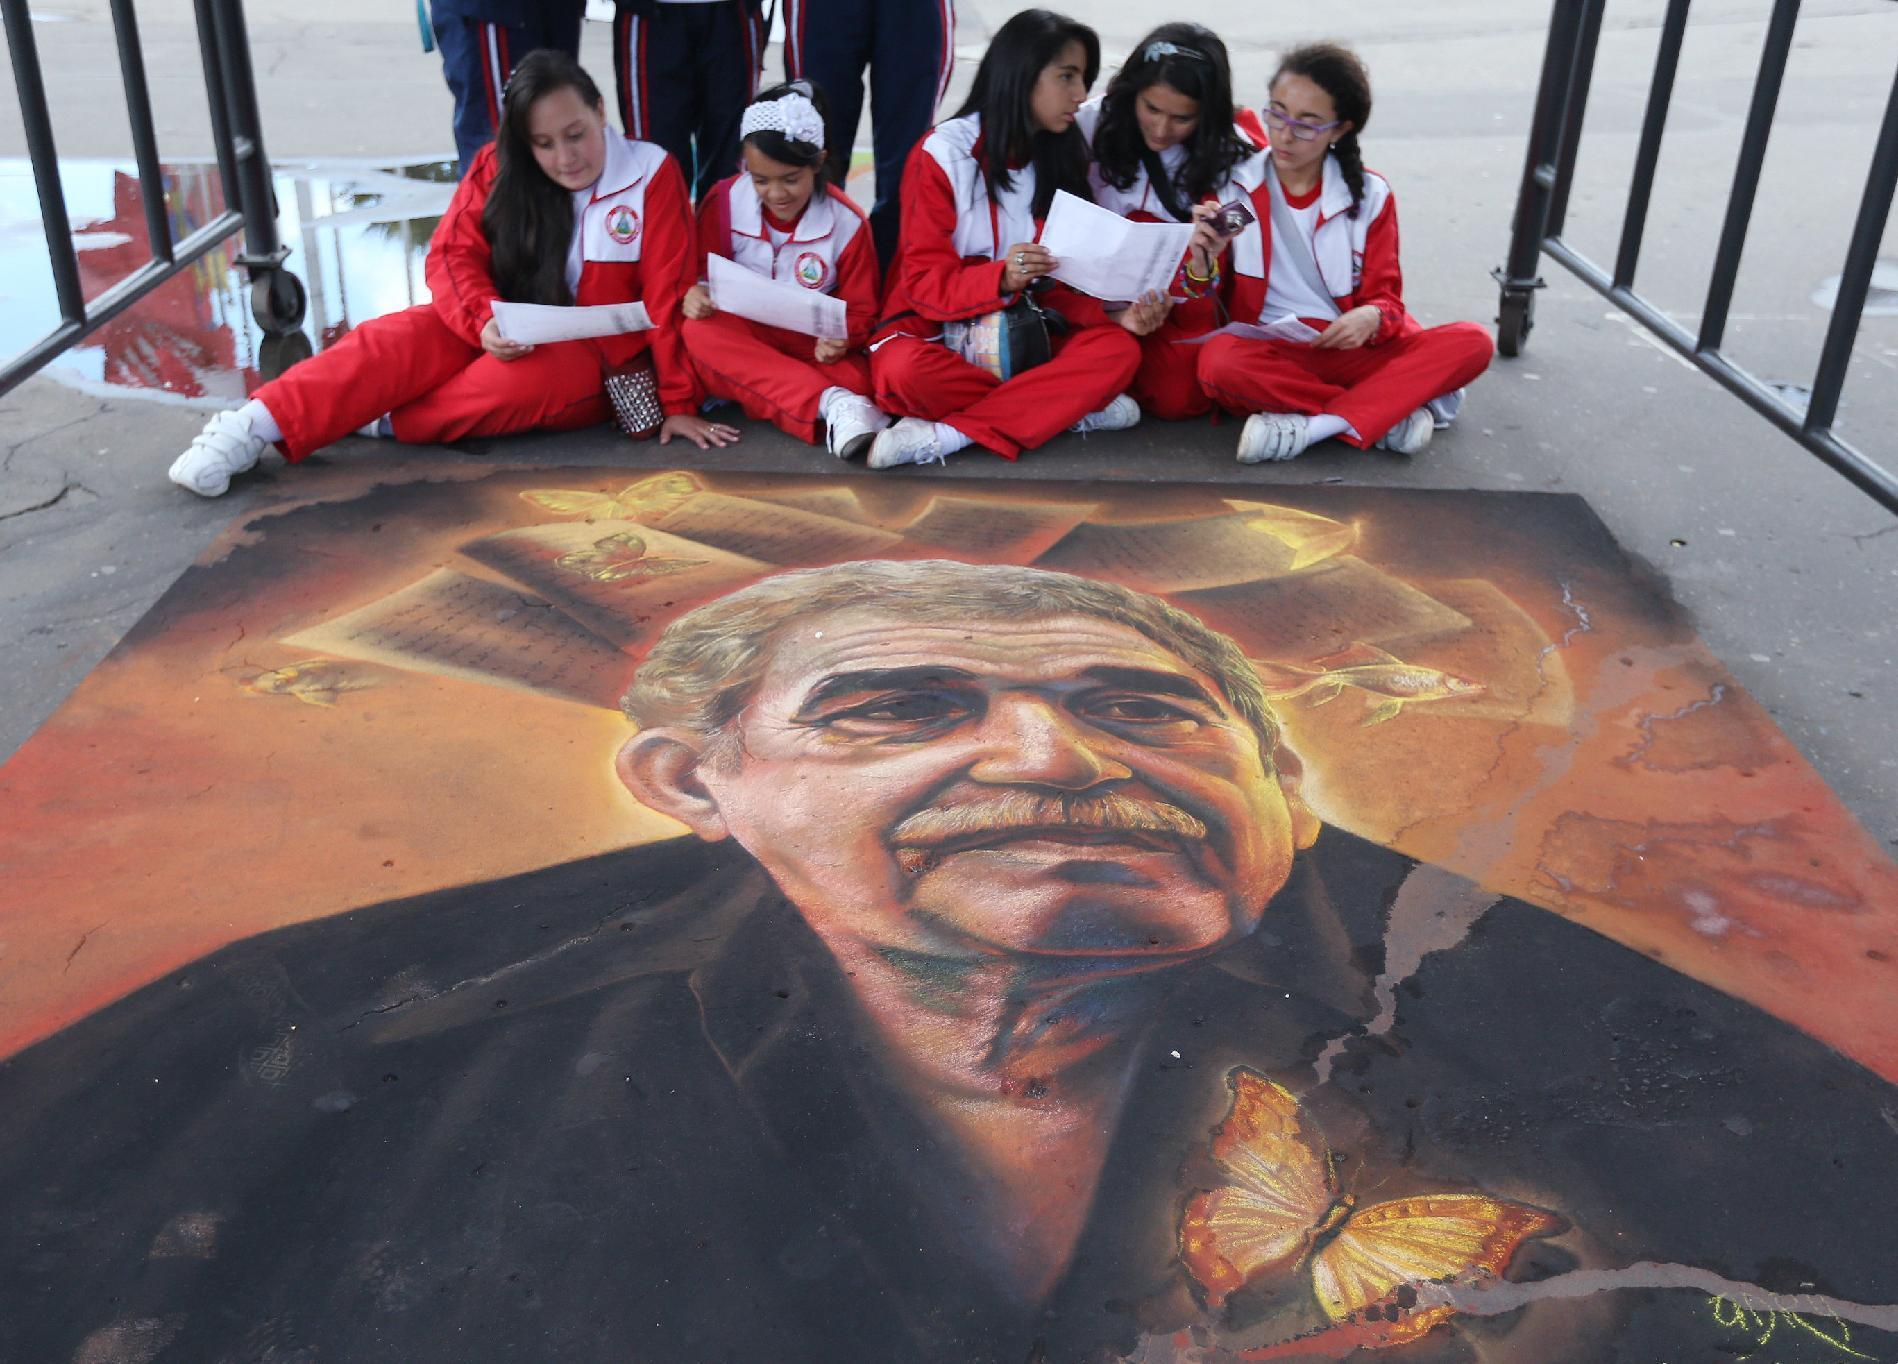 Colombia stunned by theft of Garcia Marquez's first edition